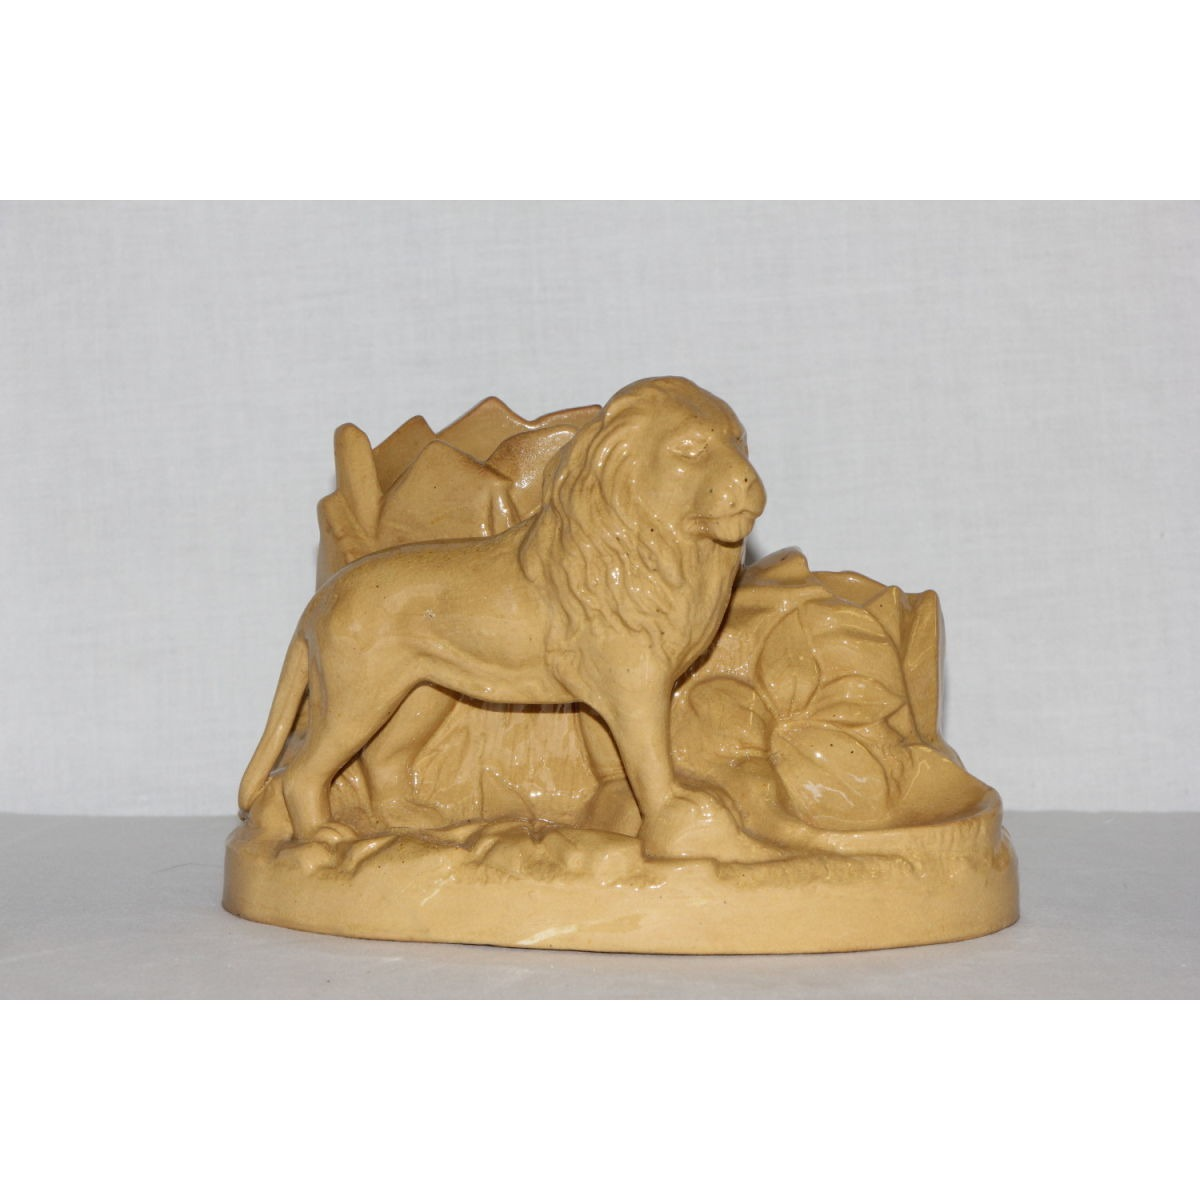 Unusual Lion Yellowware Smoking Stand or Match holder